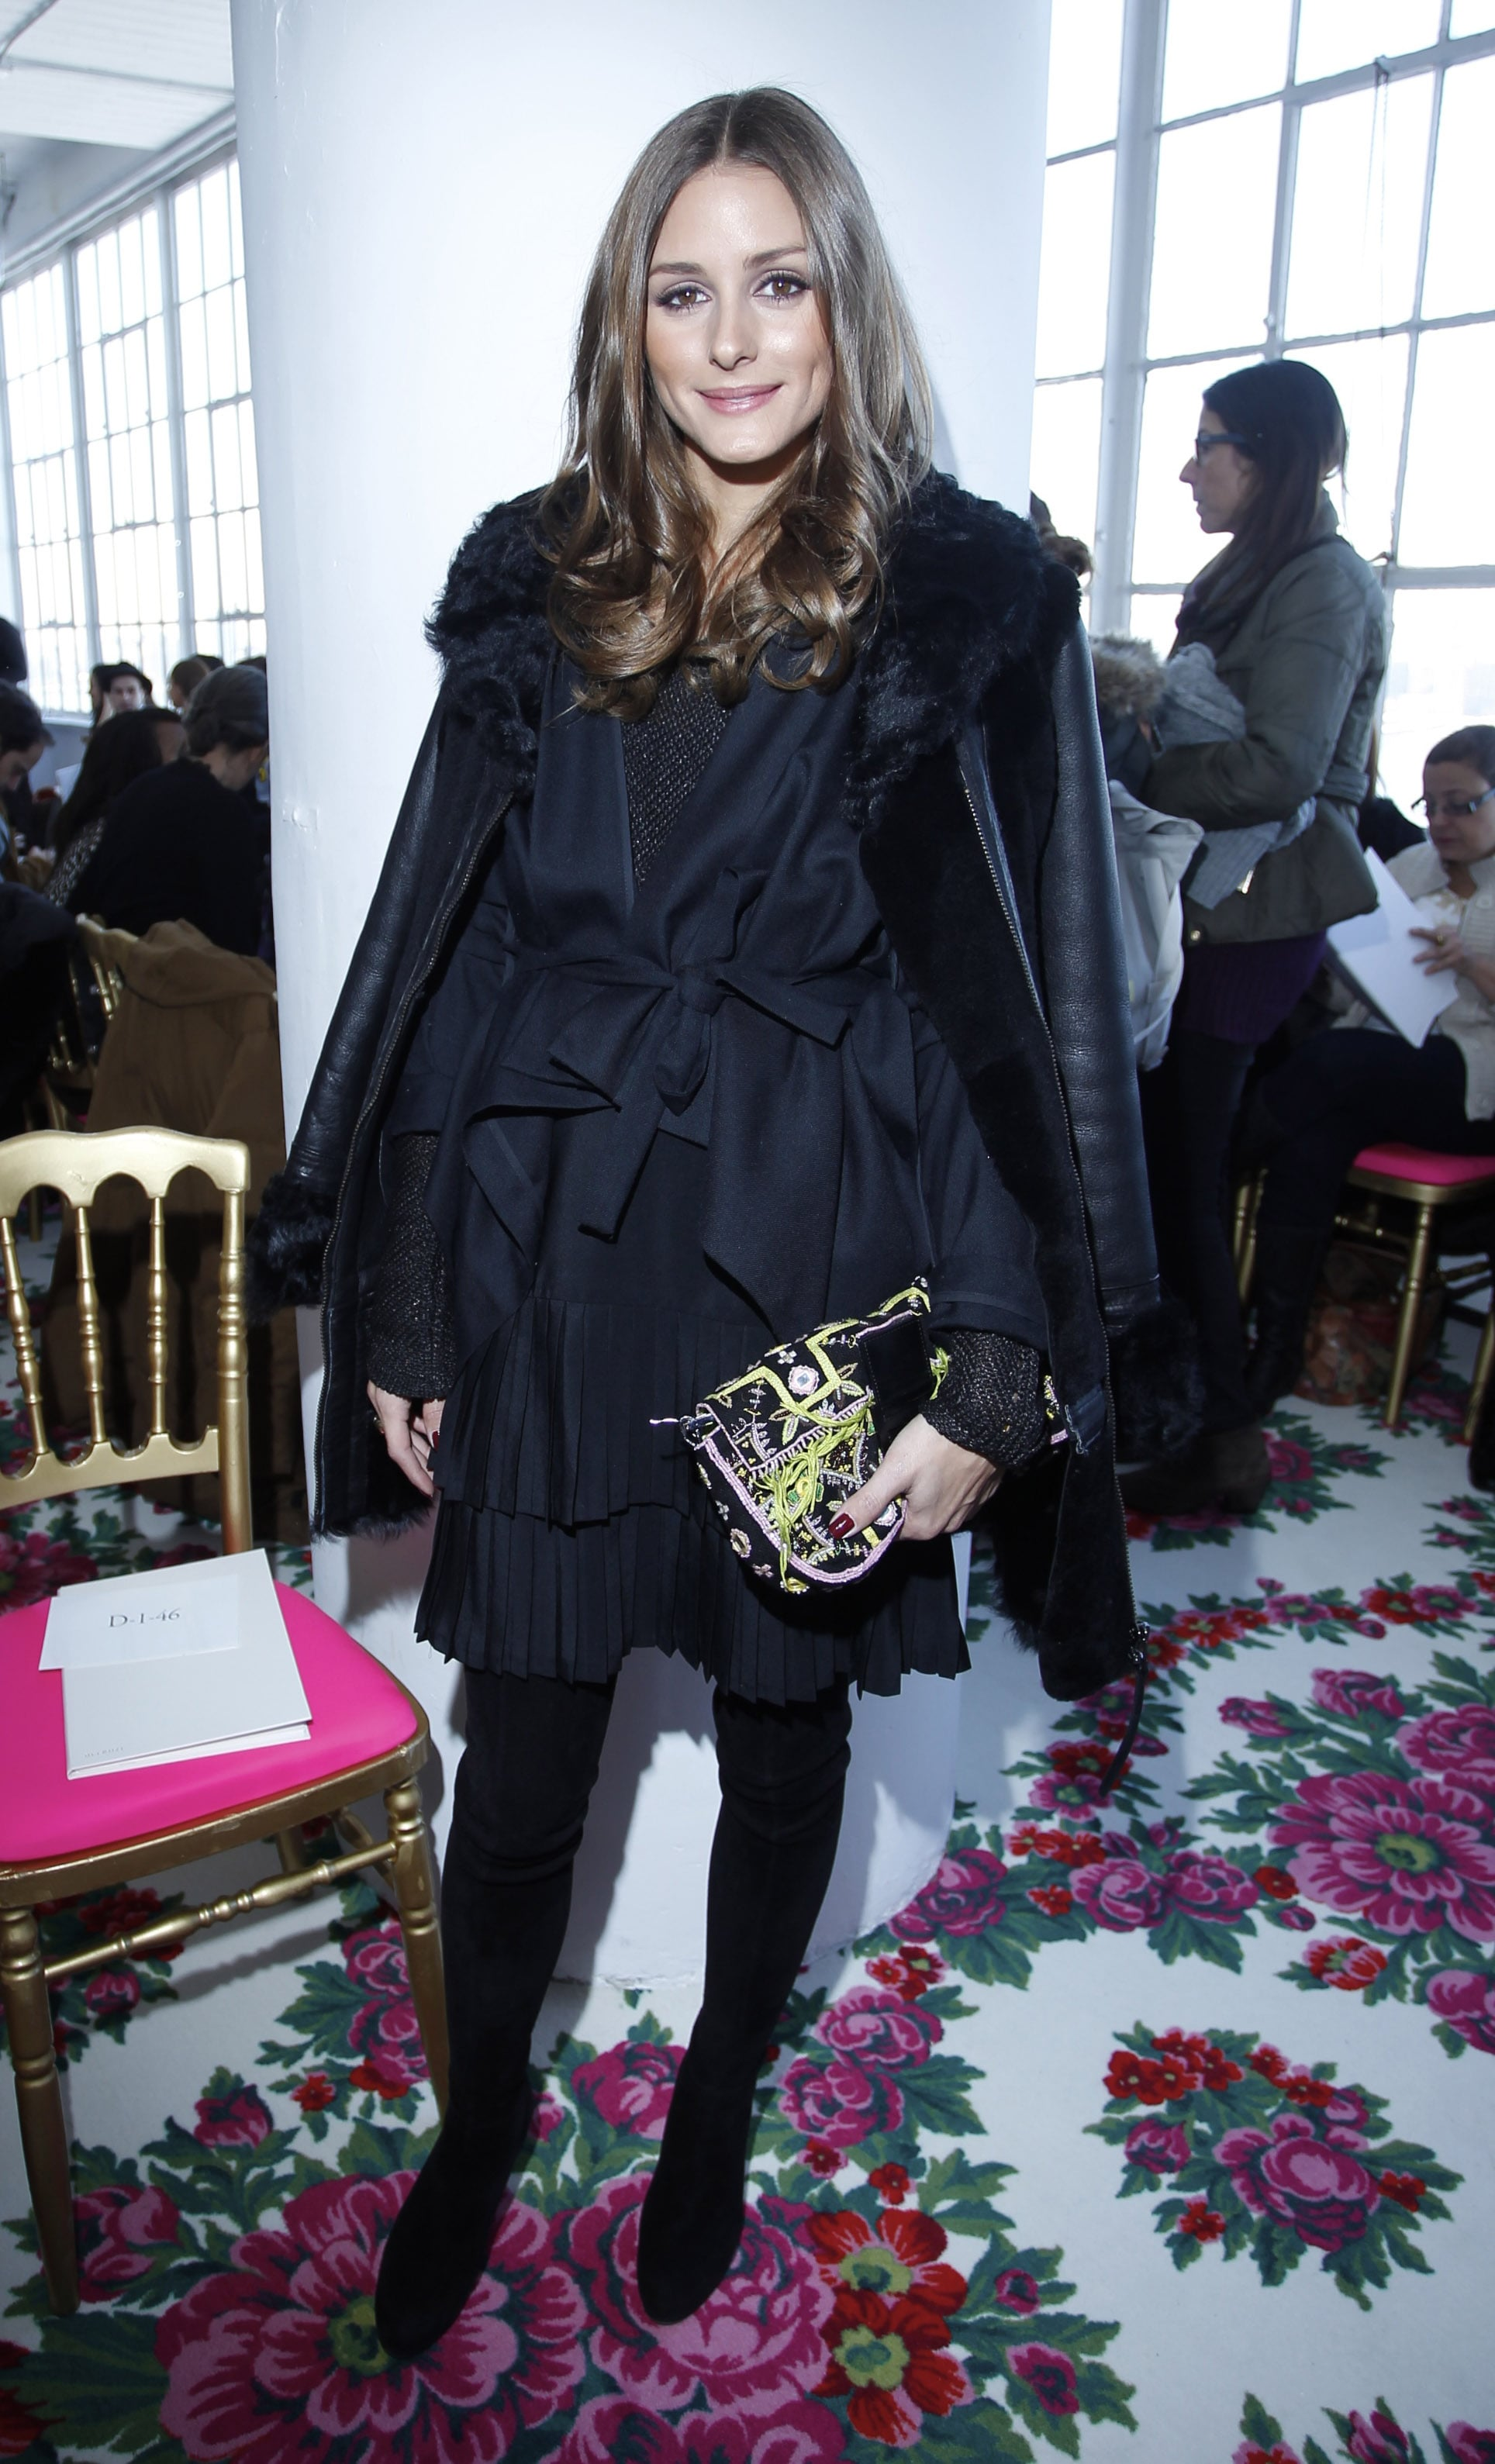 Olivia paired her navy-and-black layered look with a neon Fendi clutch at Delpozo at NYFW.